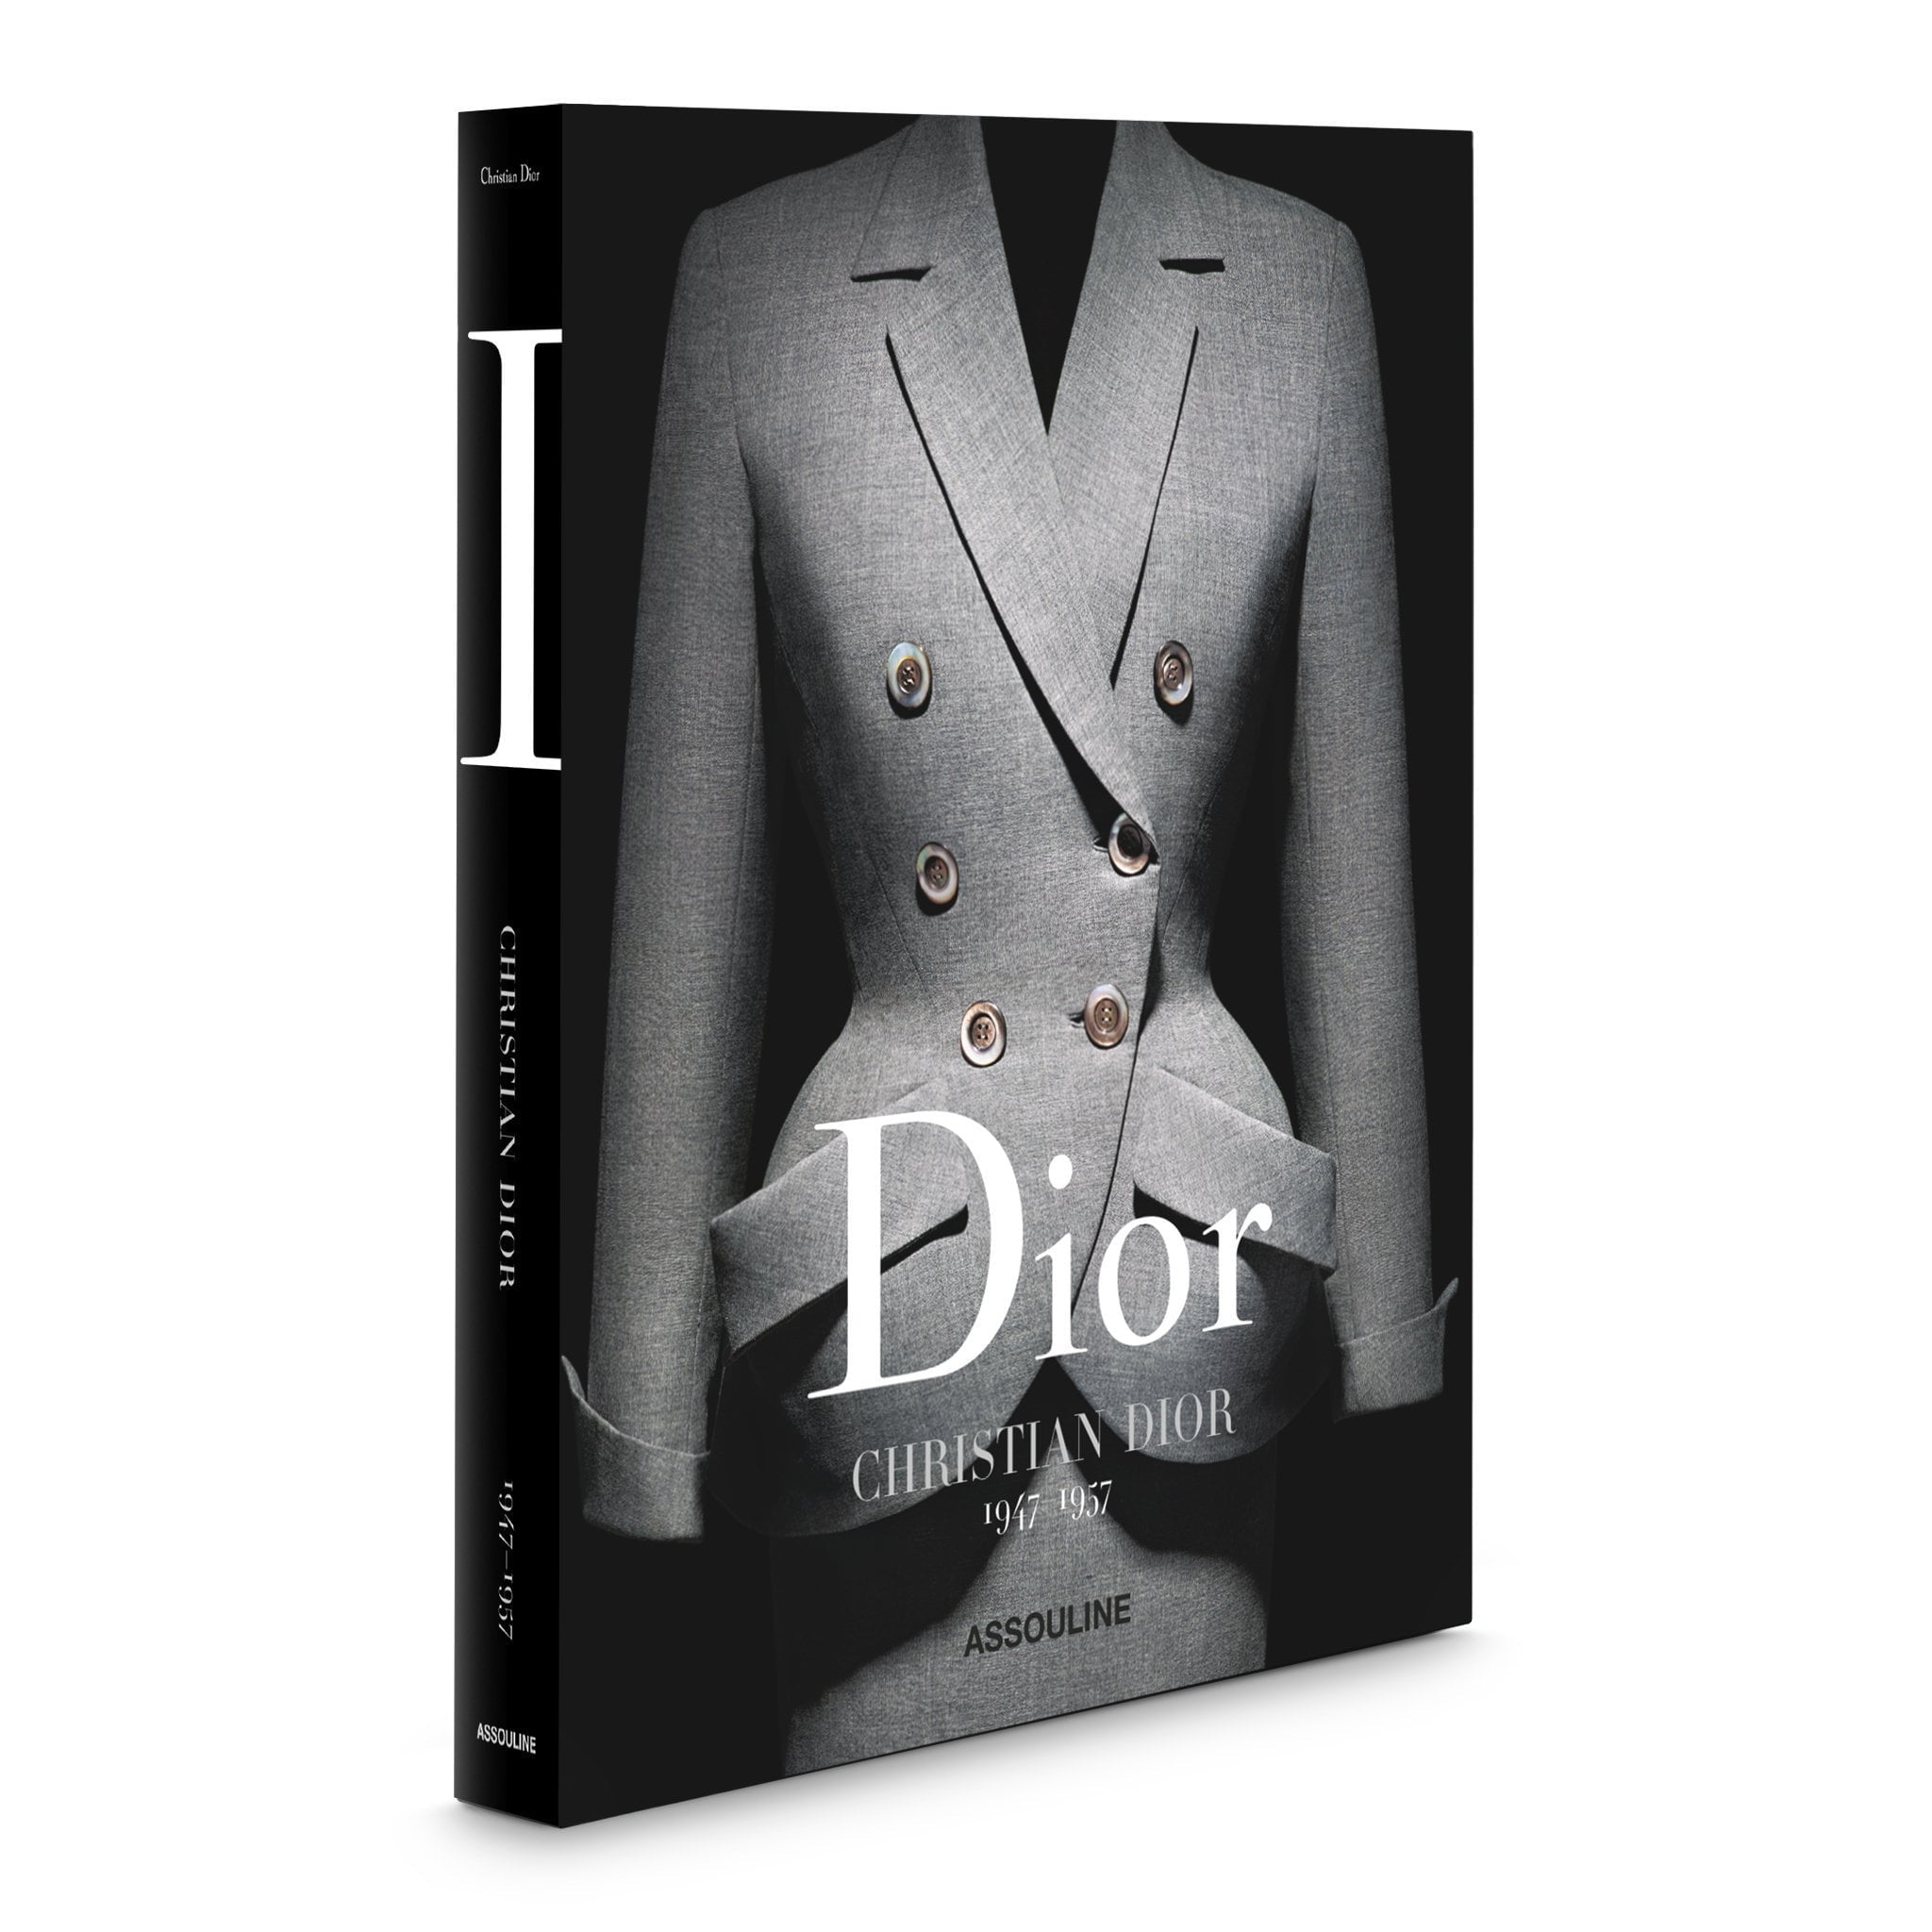 Dior by Christian Dior - Assouline